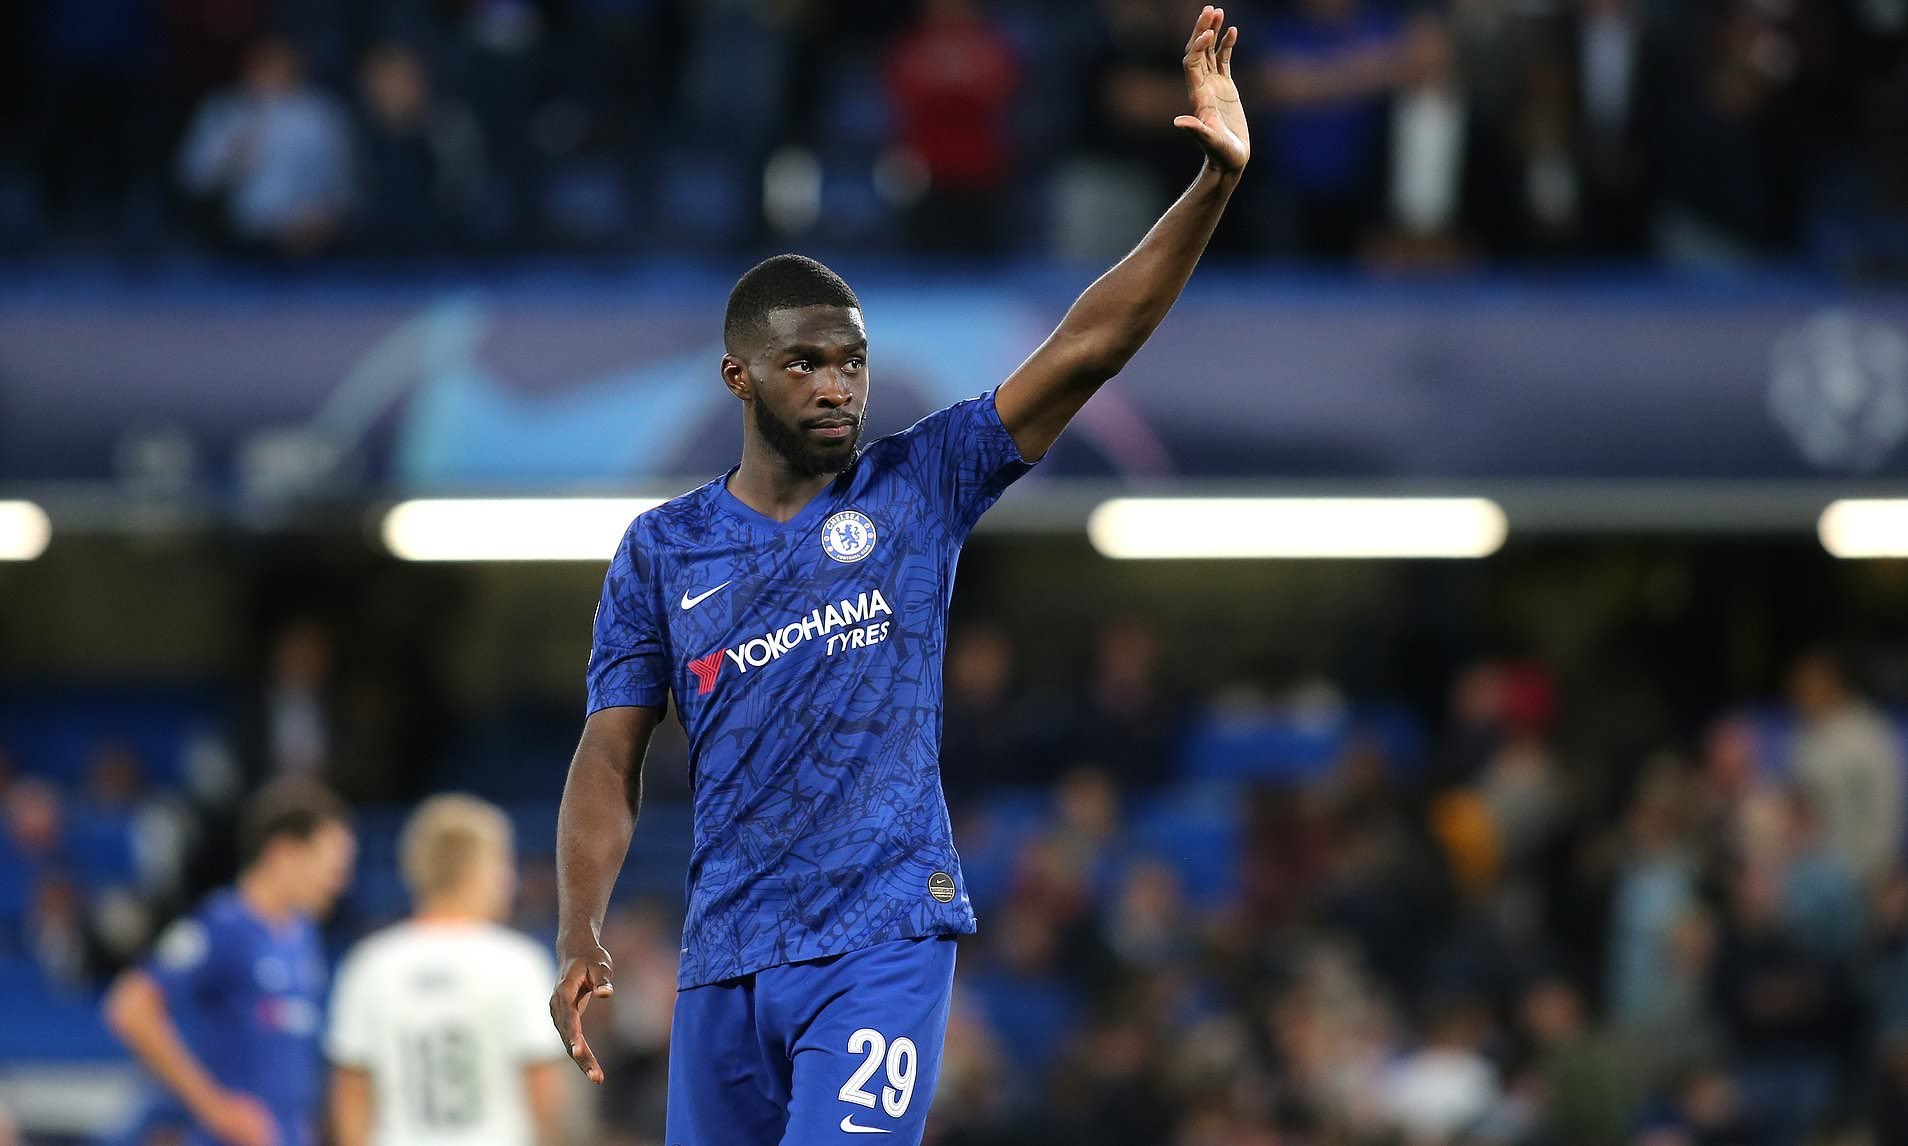 Tomori Set To Join Ligue 1 Club Rennes On Loan